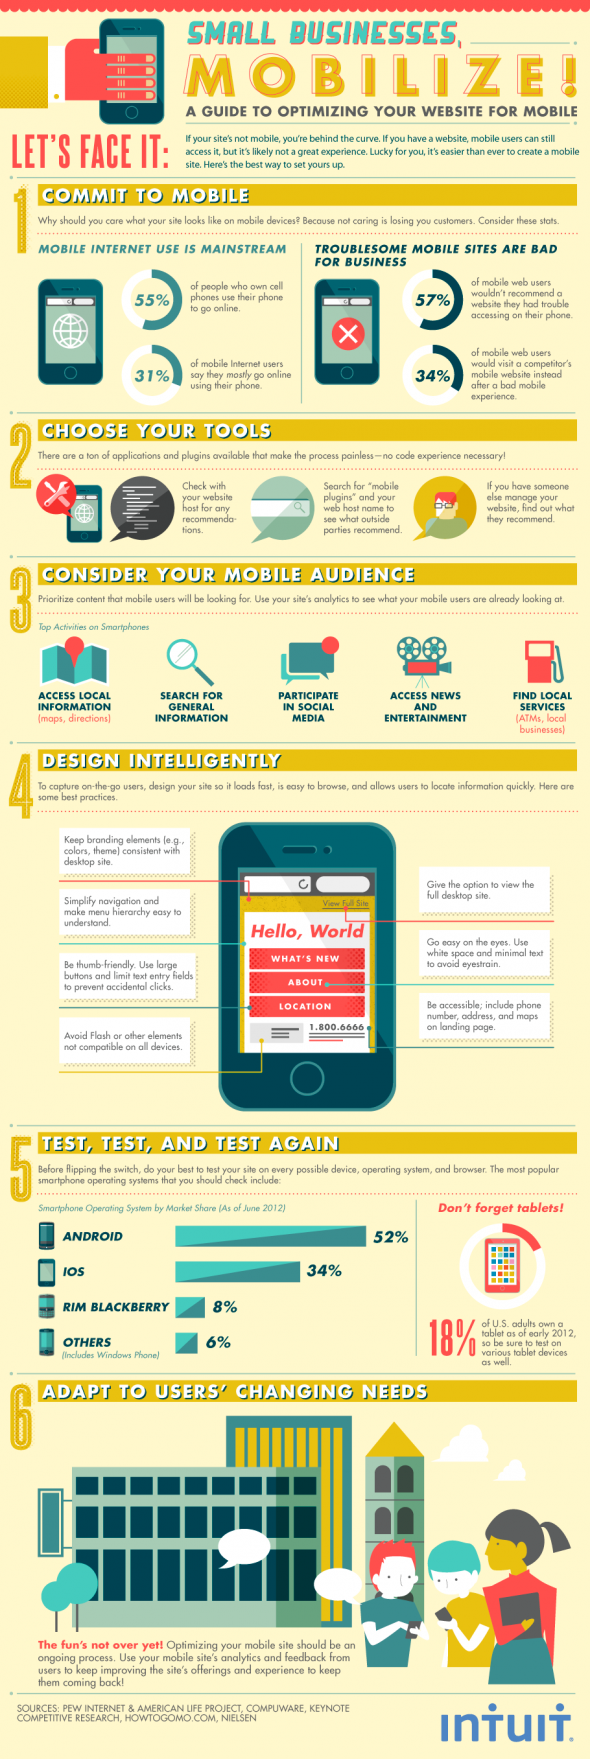 Mobilizing Small Business-Infographic